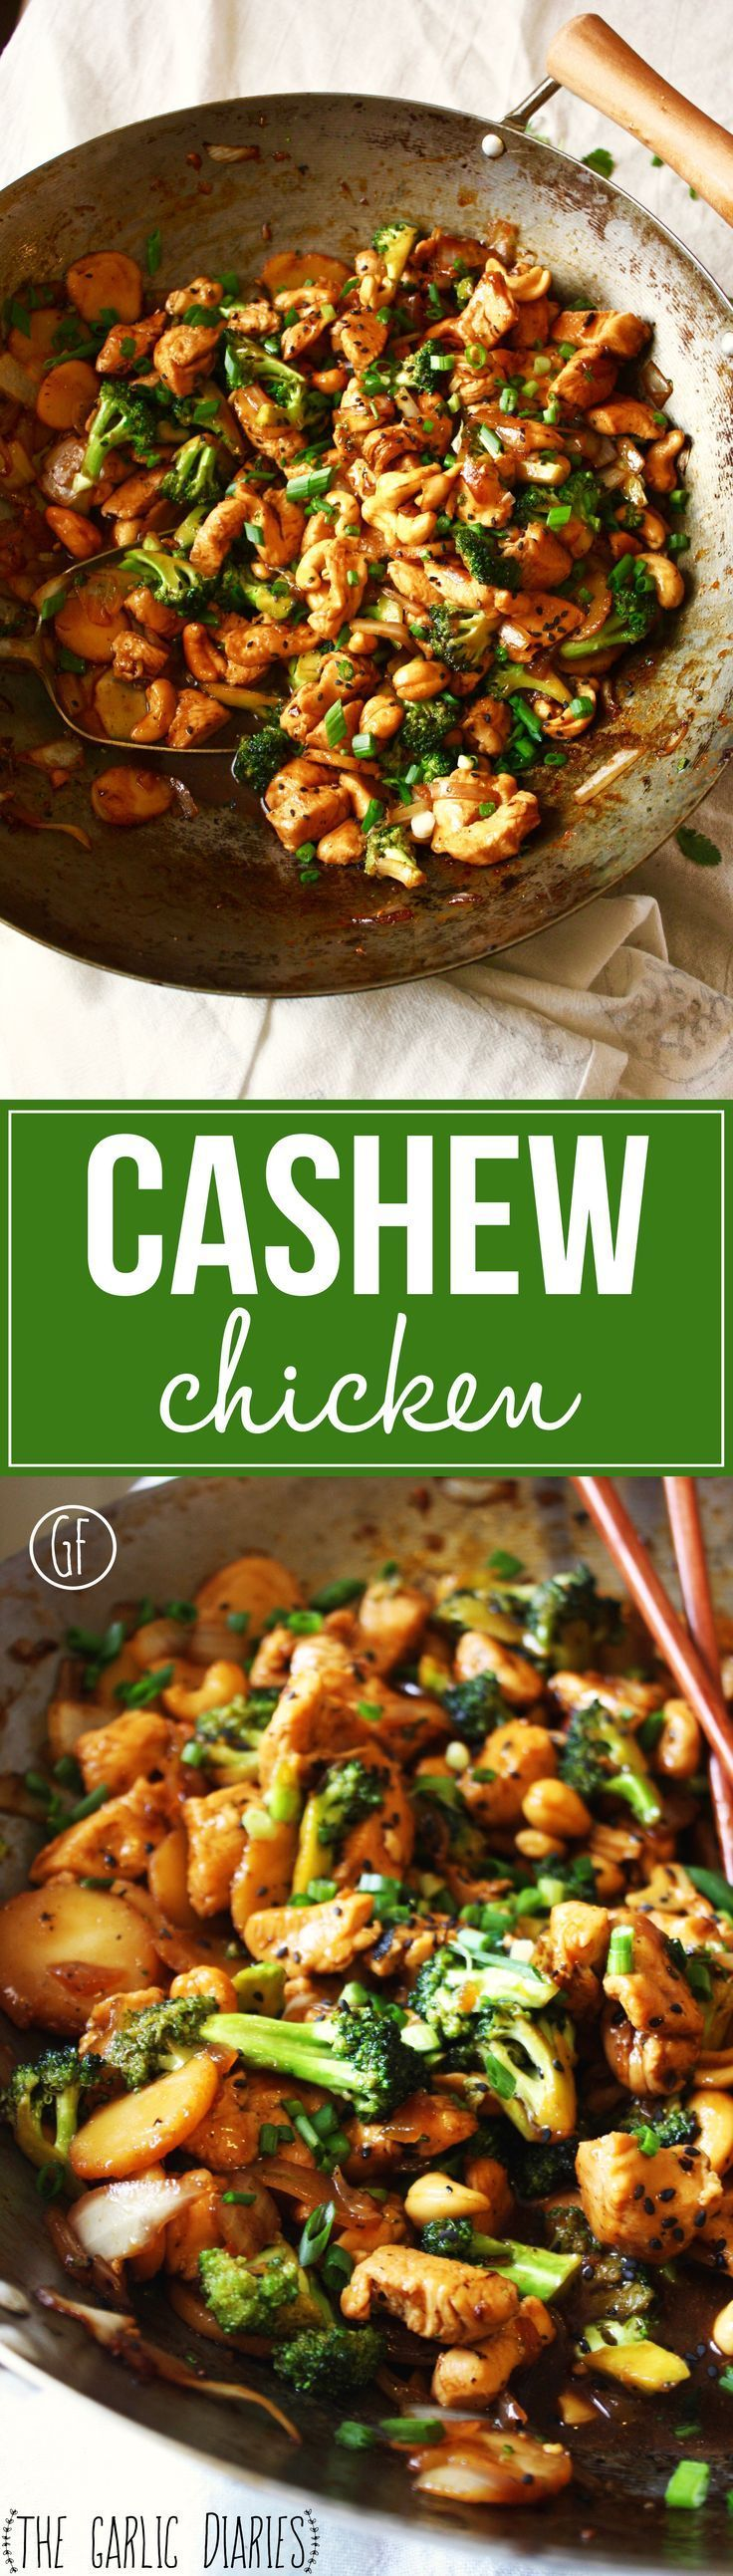 Cashew Chicken - This popular take-out dish is recreated at home using with easy and delicious recipe! Gluten free. http://TheGarlicDiaries.com